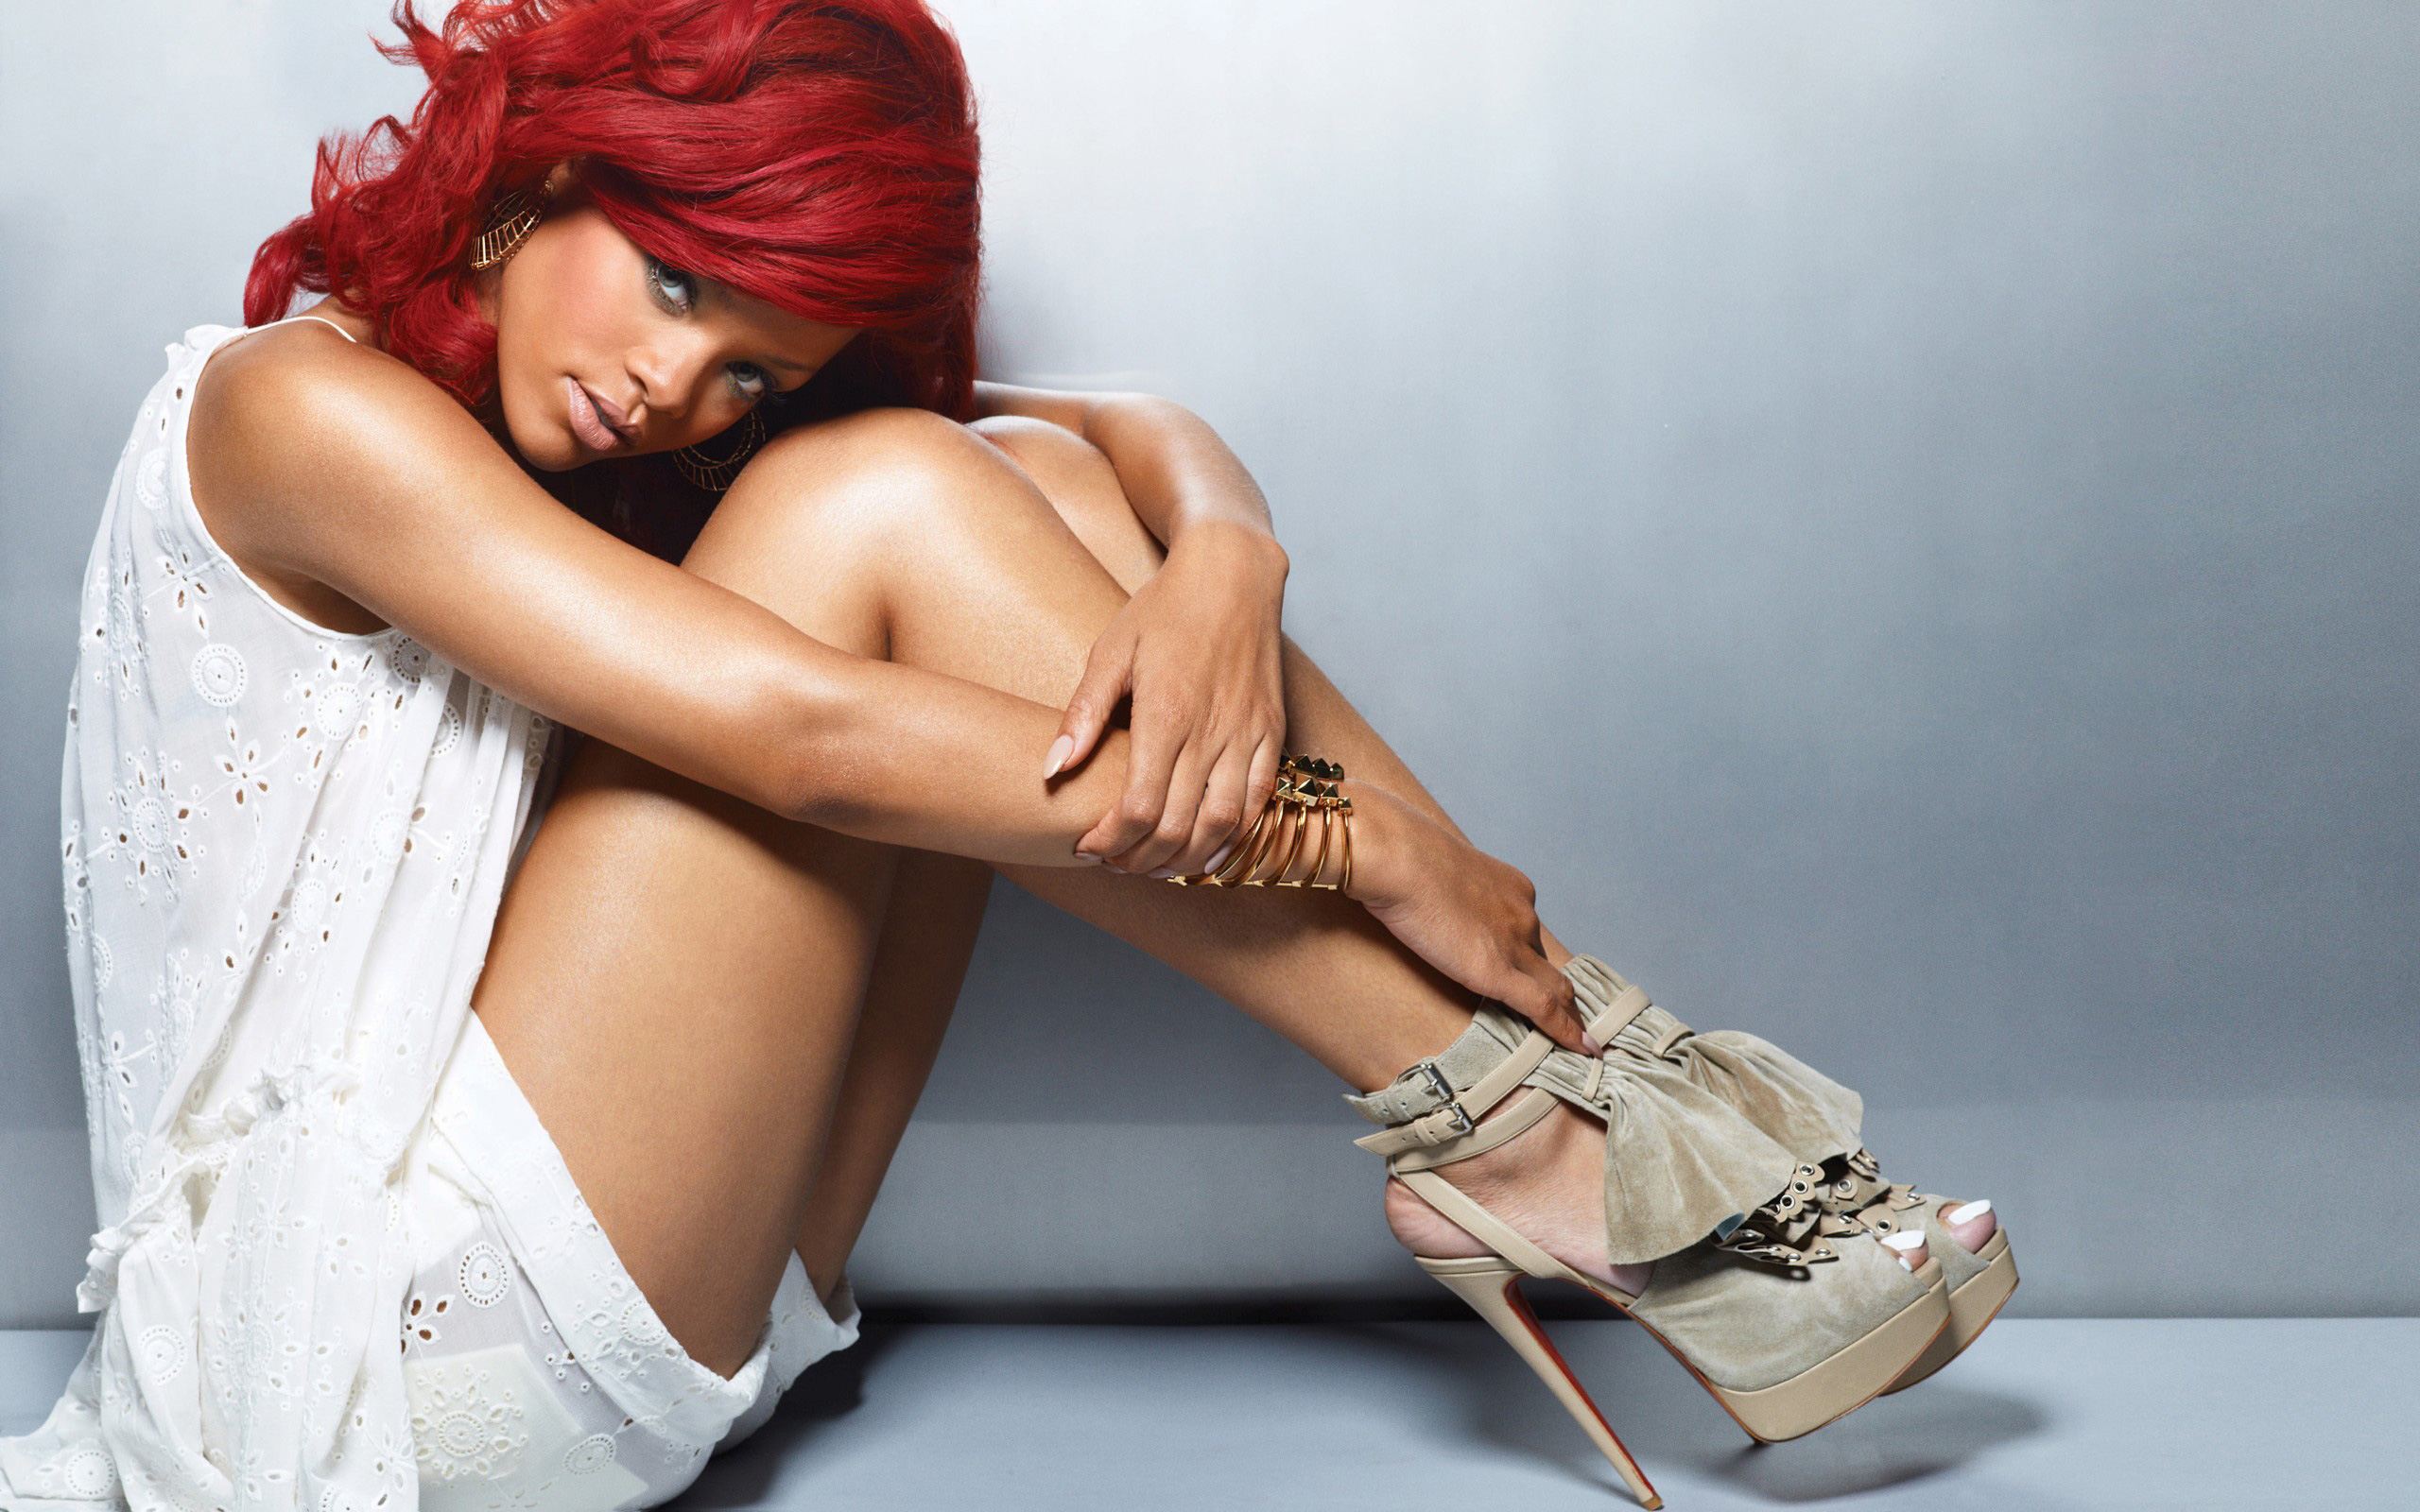 Rihanna Hot New wallpaper